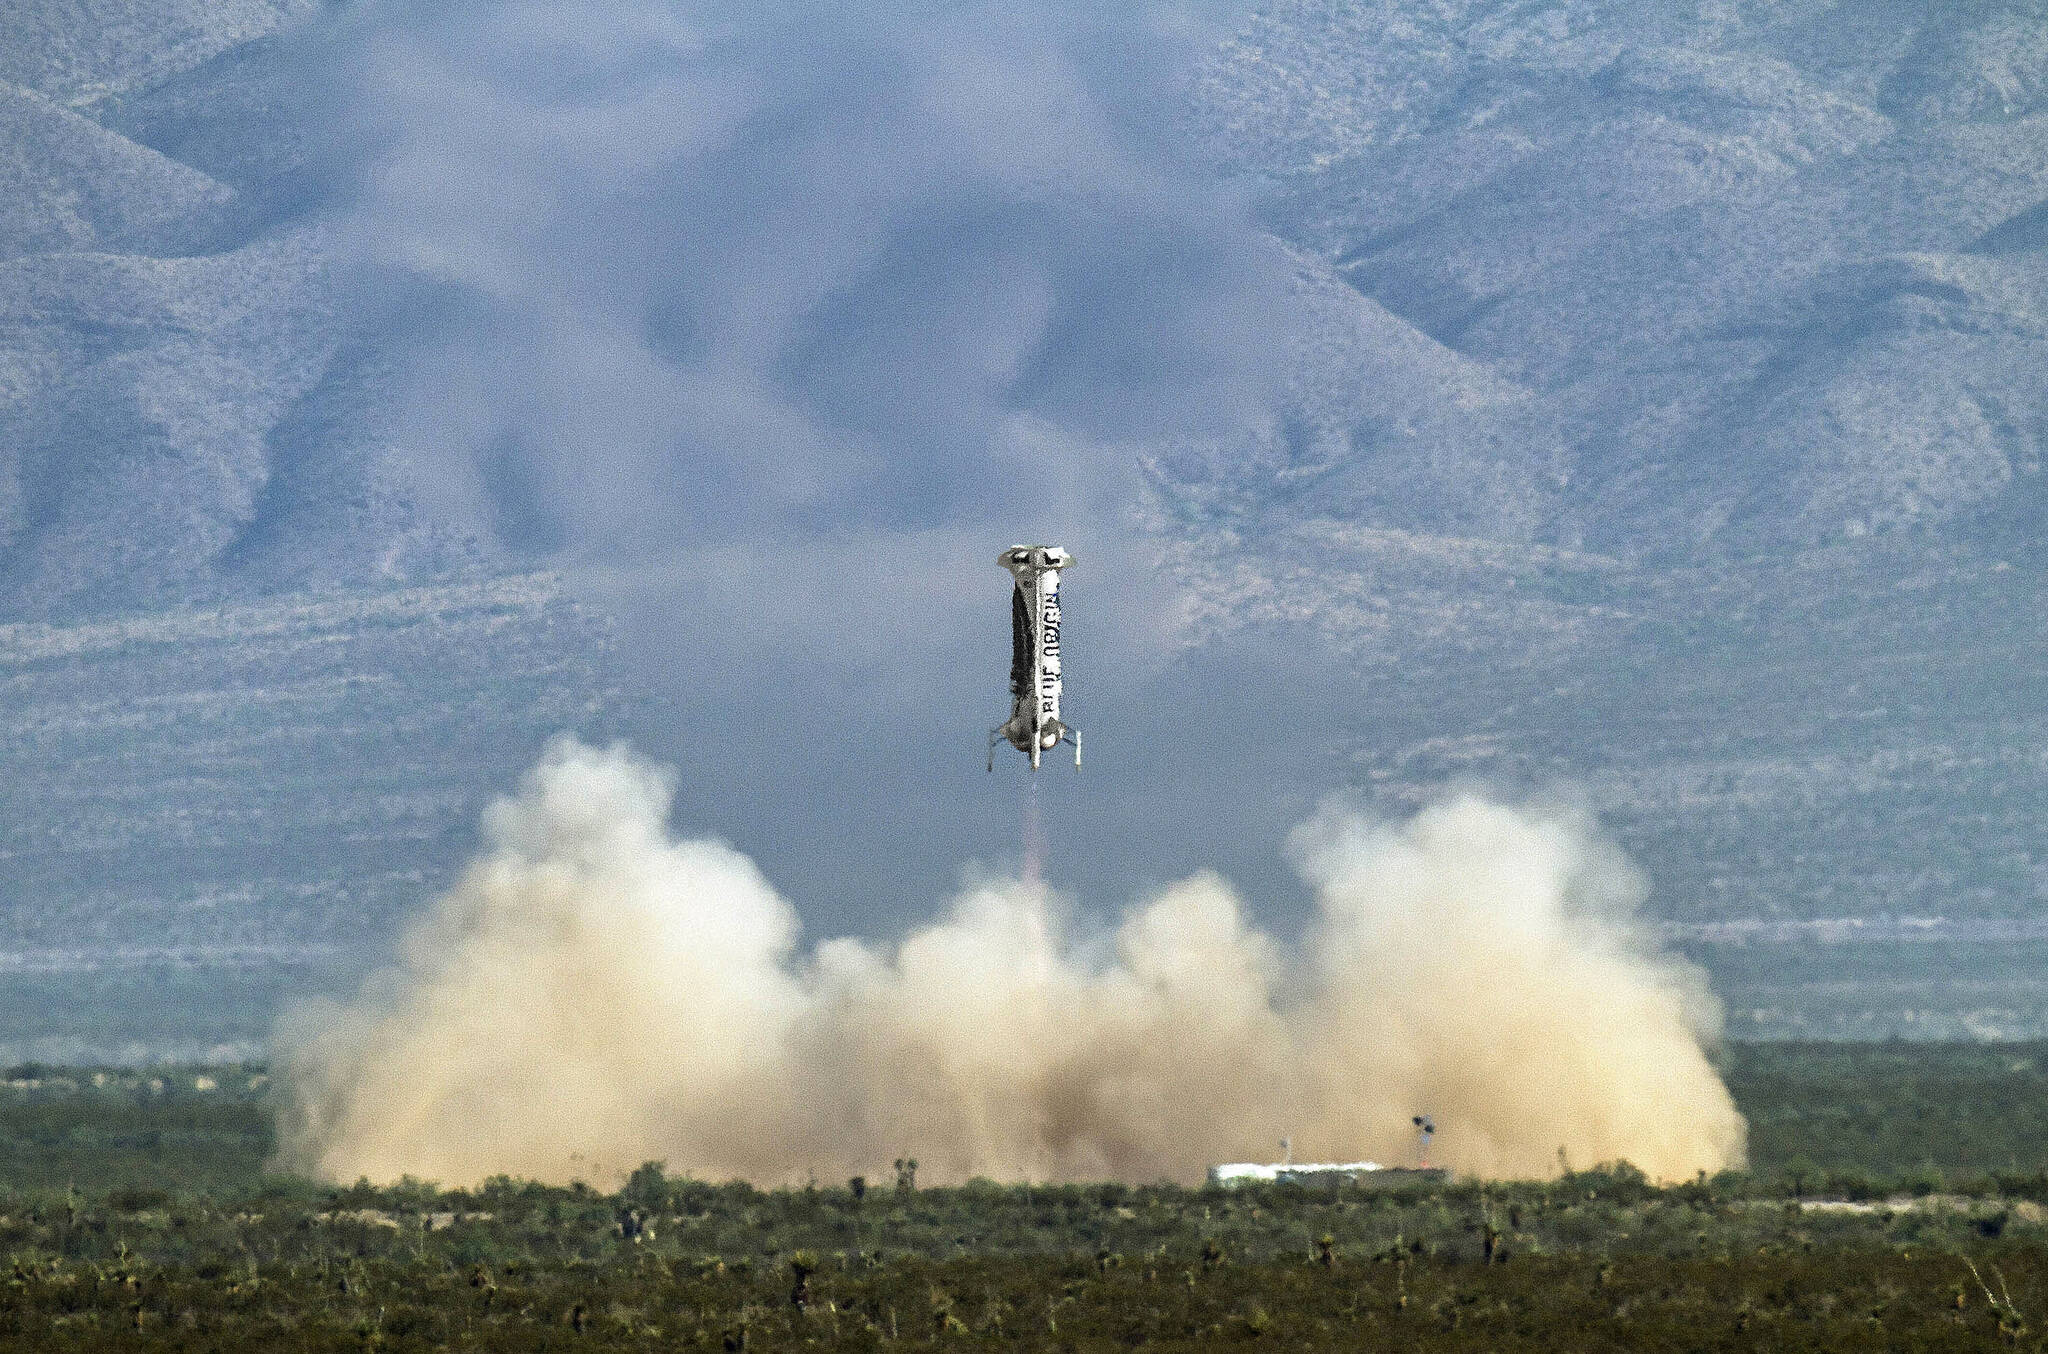 New Shepard booster landing in preparation for last week's successful launch with Jeff Bezos and others onboard. Photos courtesy of Blue Origin Jeff Bezos' space travel company, Blue Origin, announced Monday that William Shatner will blast off from West Texas on Oct. 12. (Photo courtesy of Blue Origin)